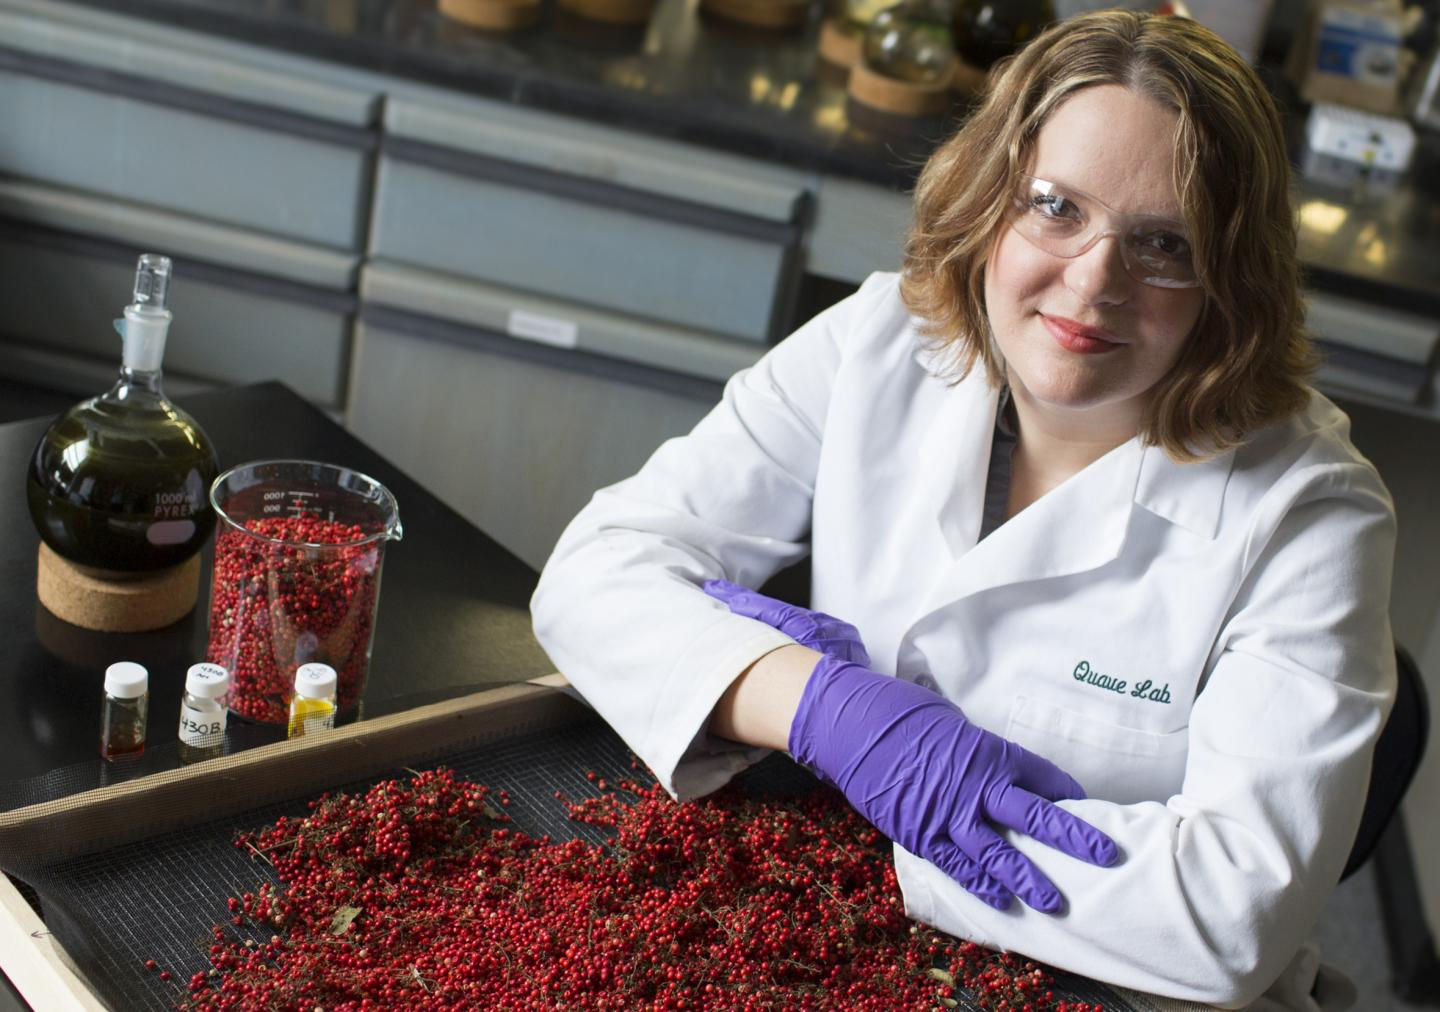 IMAGE  - 132852 web 1 - Brazilian peppertree packs power to knock out antibiotic-resistant bacteria